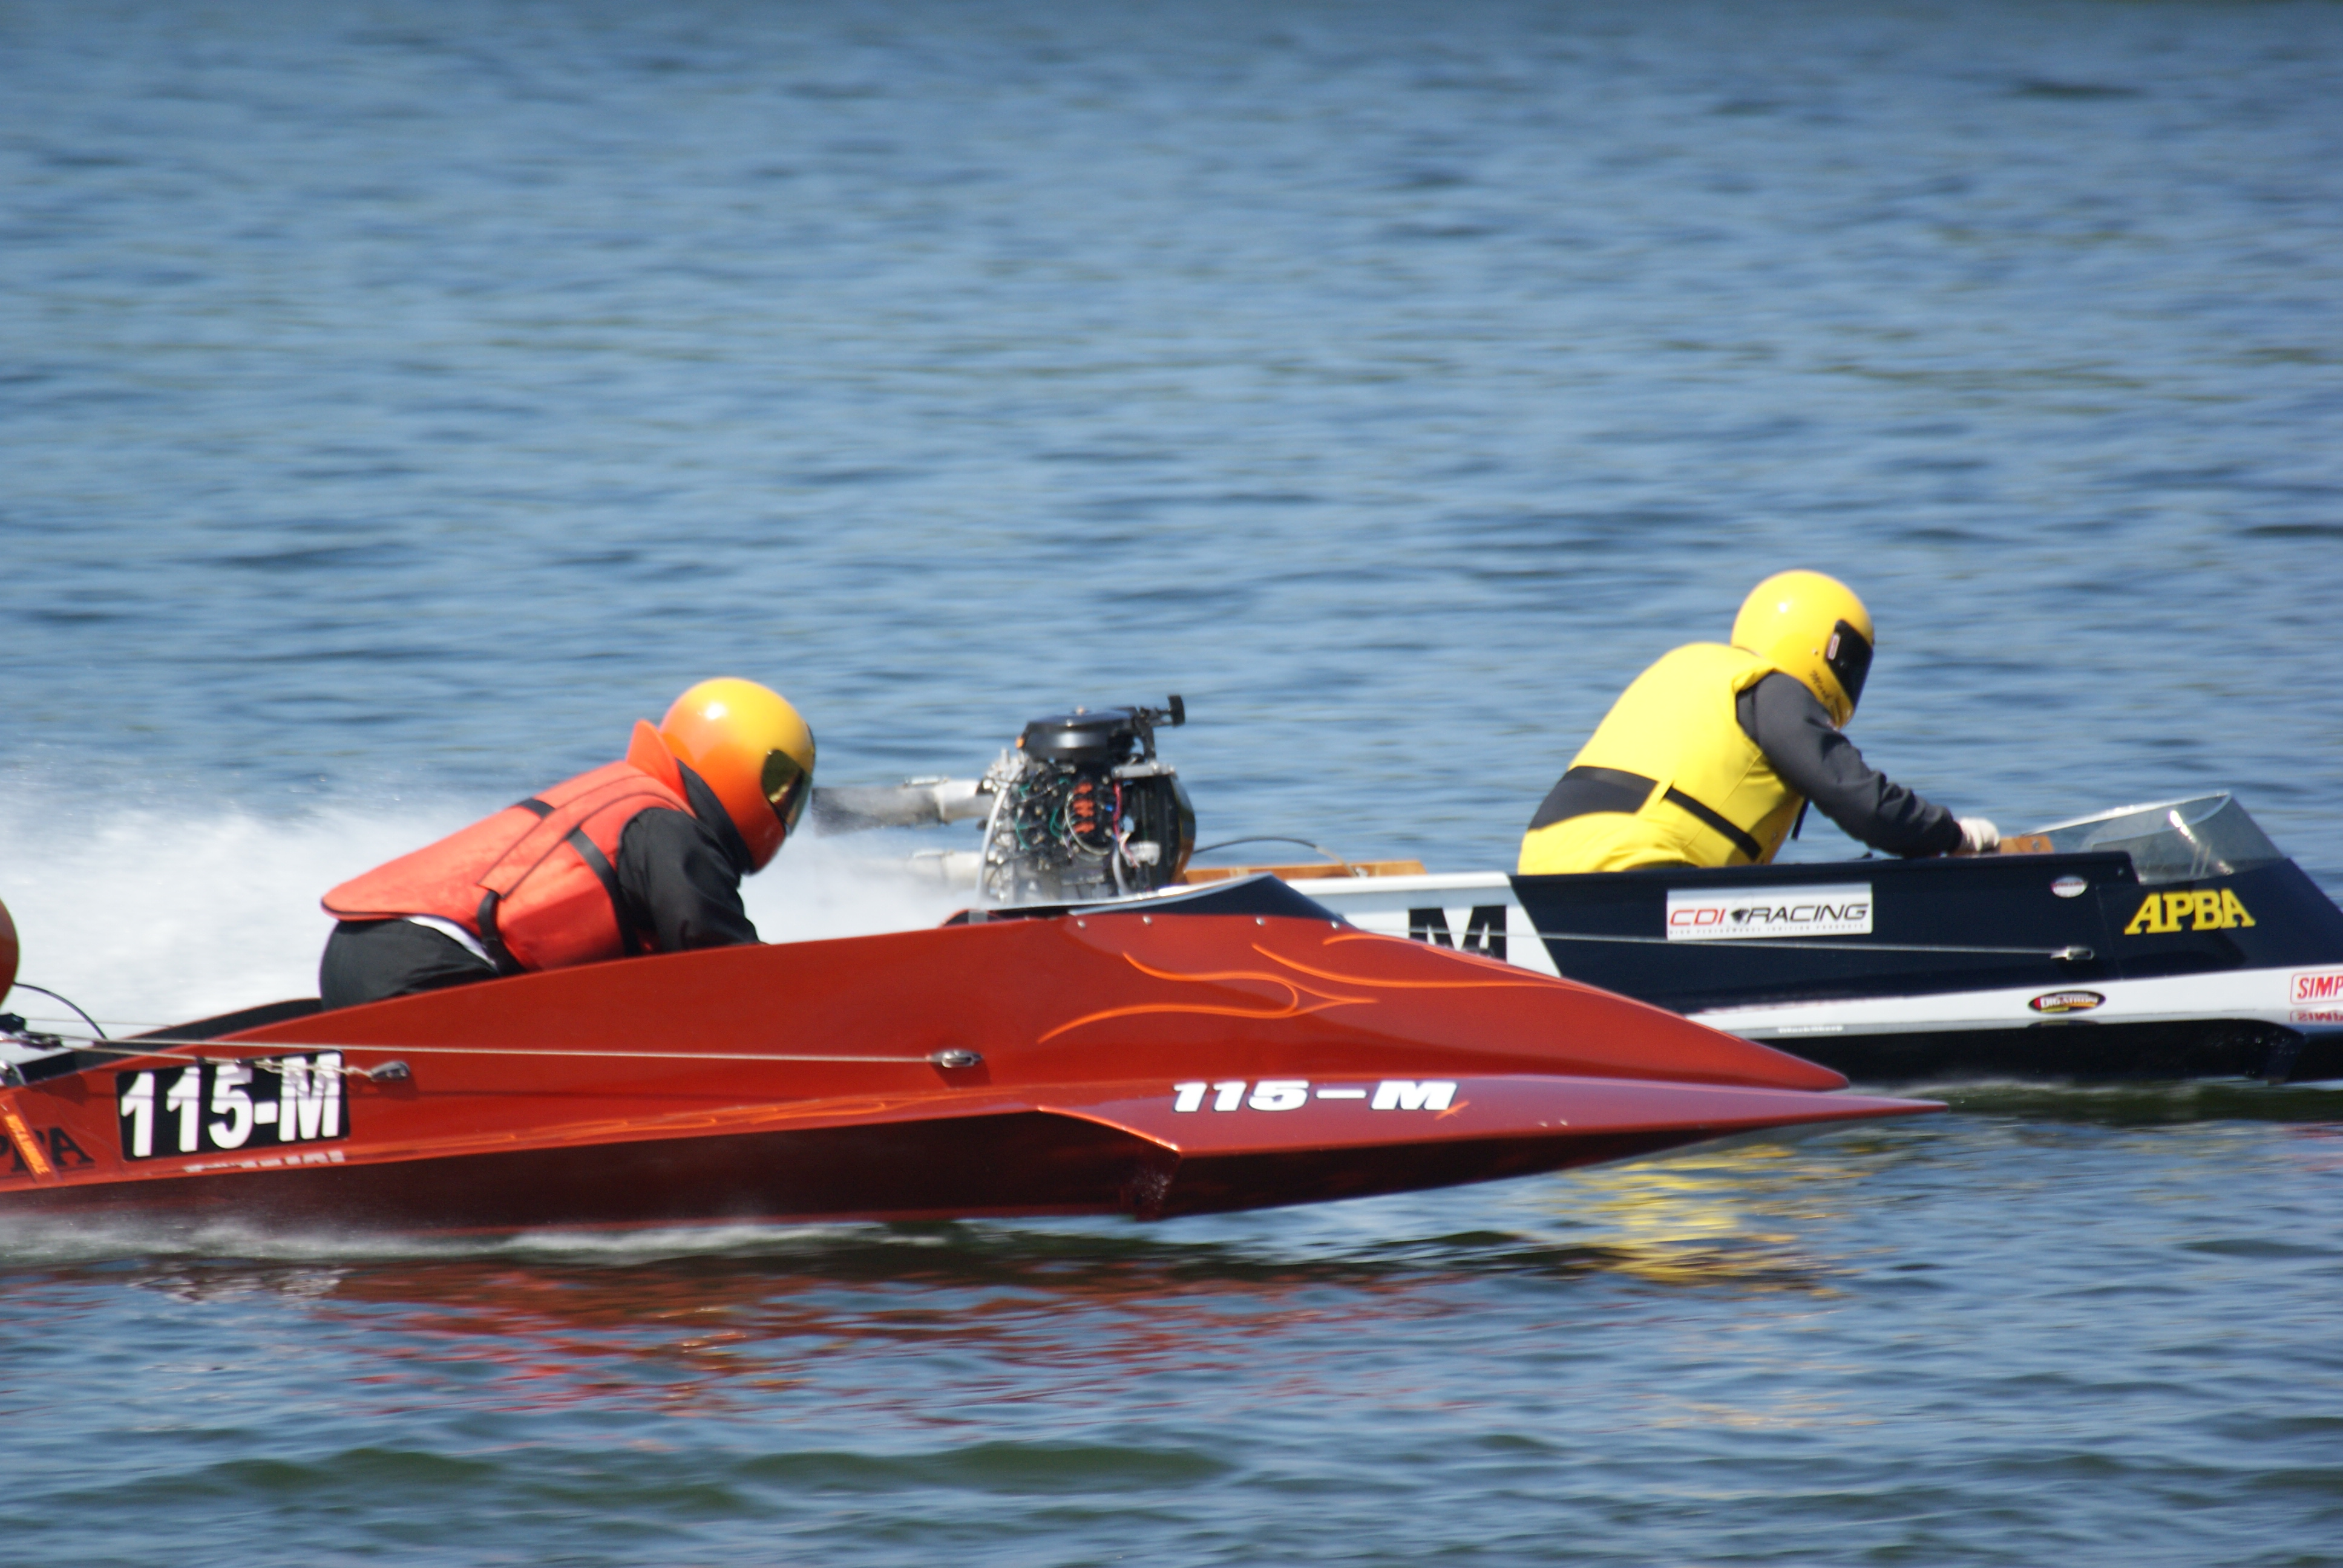 outboard-racing-lake-clare-boat-races-June-huntington-indiana